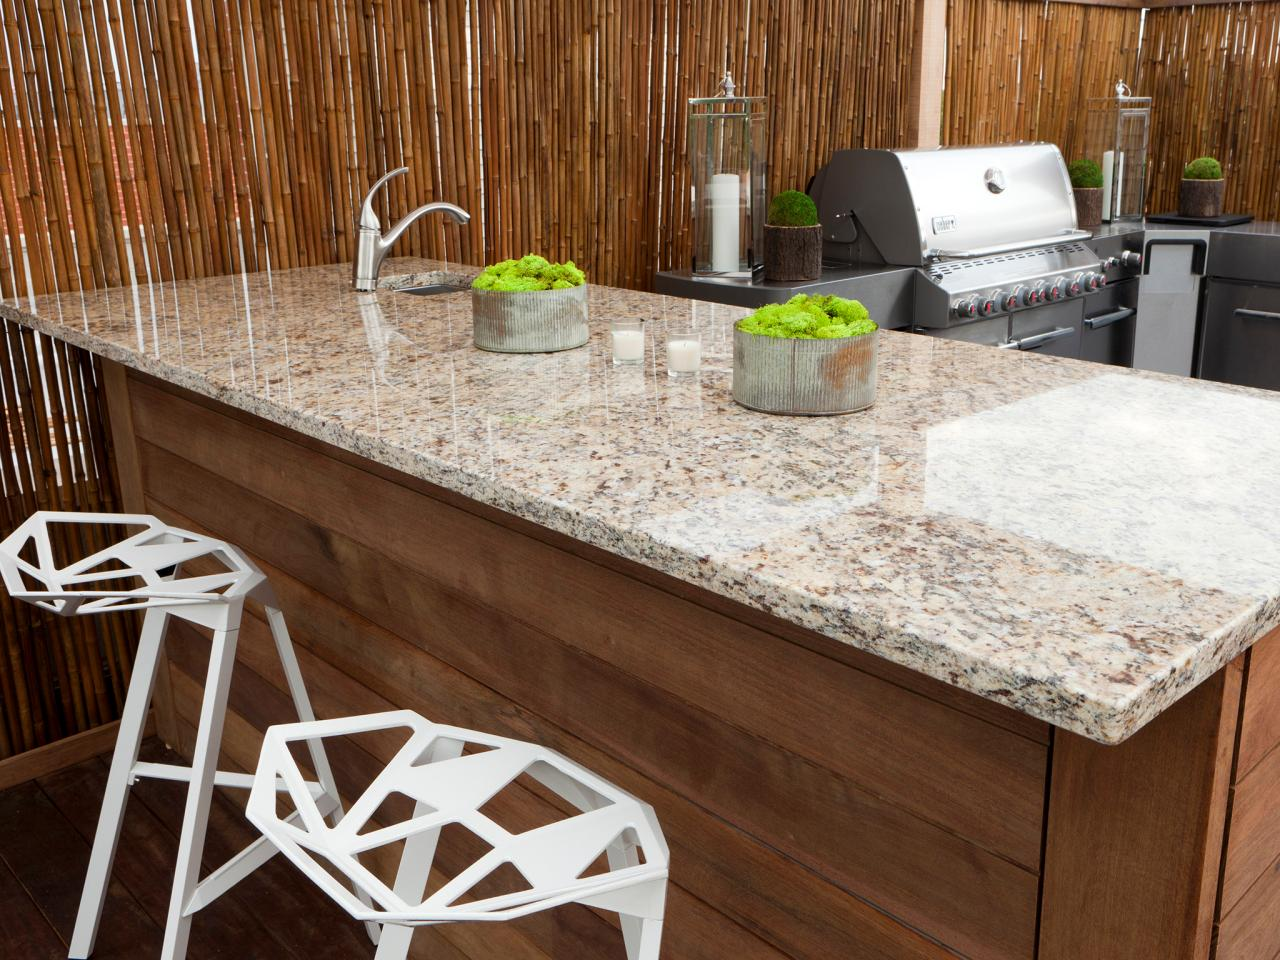 Granite Vs Quartz Is One Better Than The Other Hgtv 39 S Decorating Design Blog Hgtv